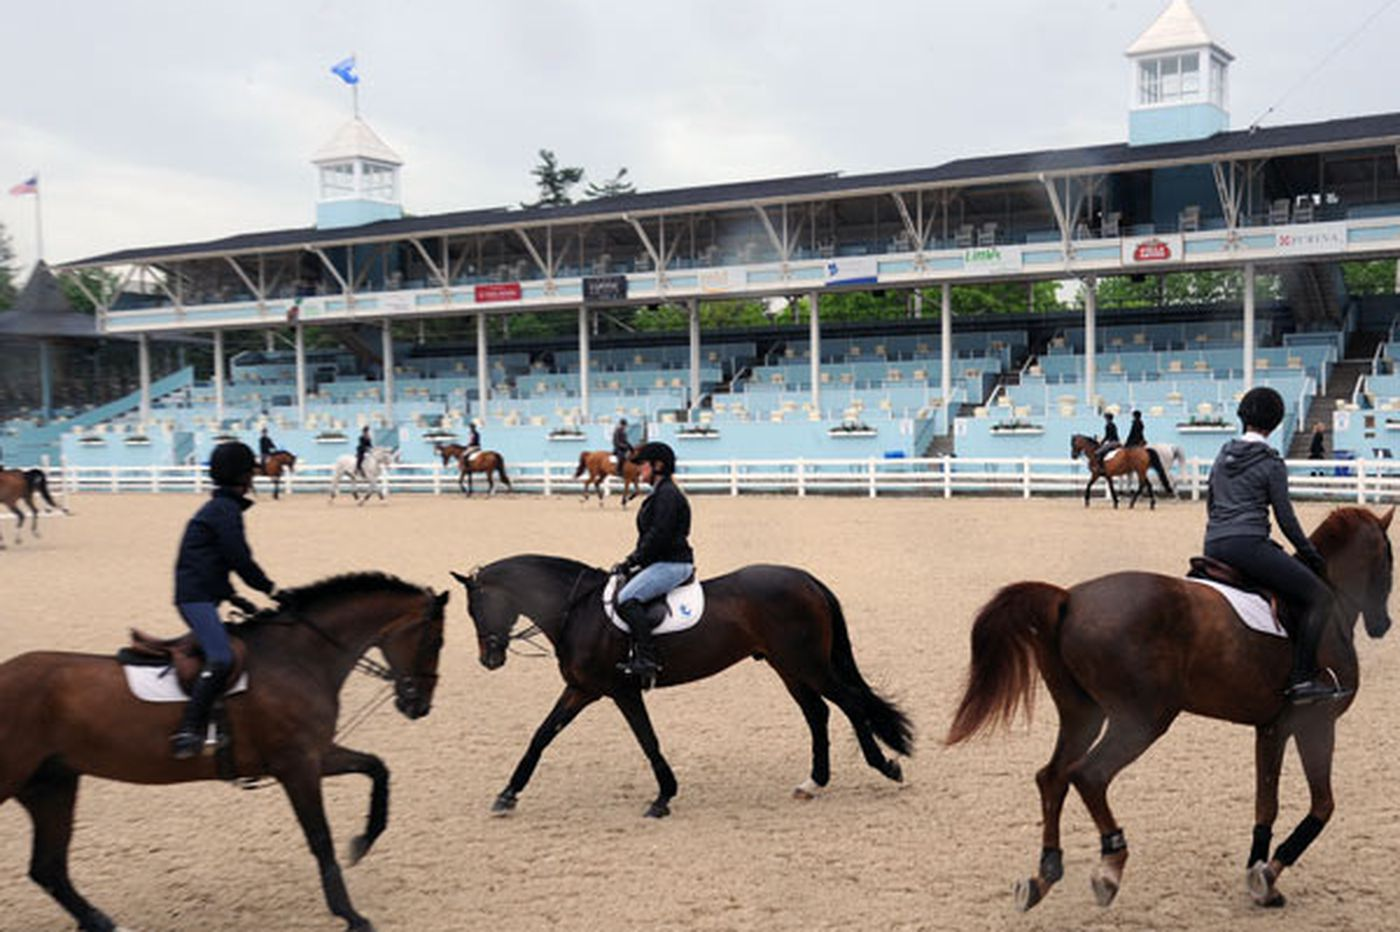 After year of tumult, new leaders say Devon Horse Show will go on